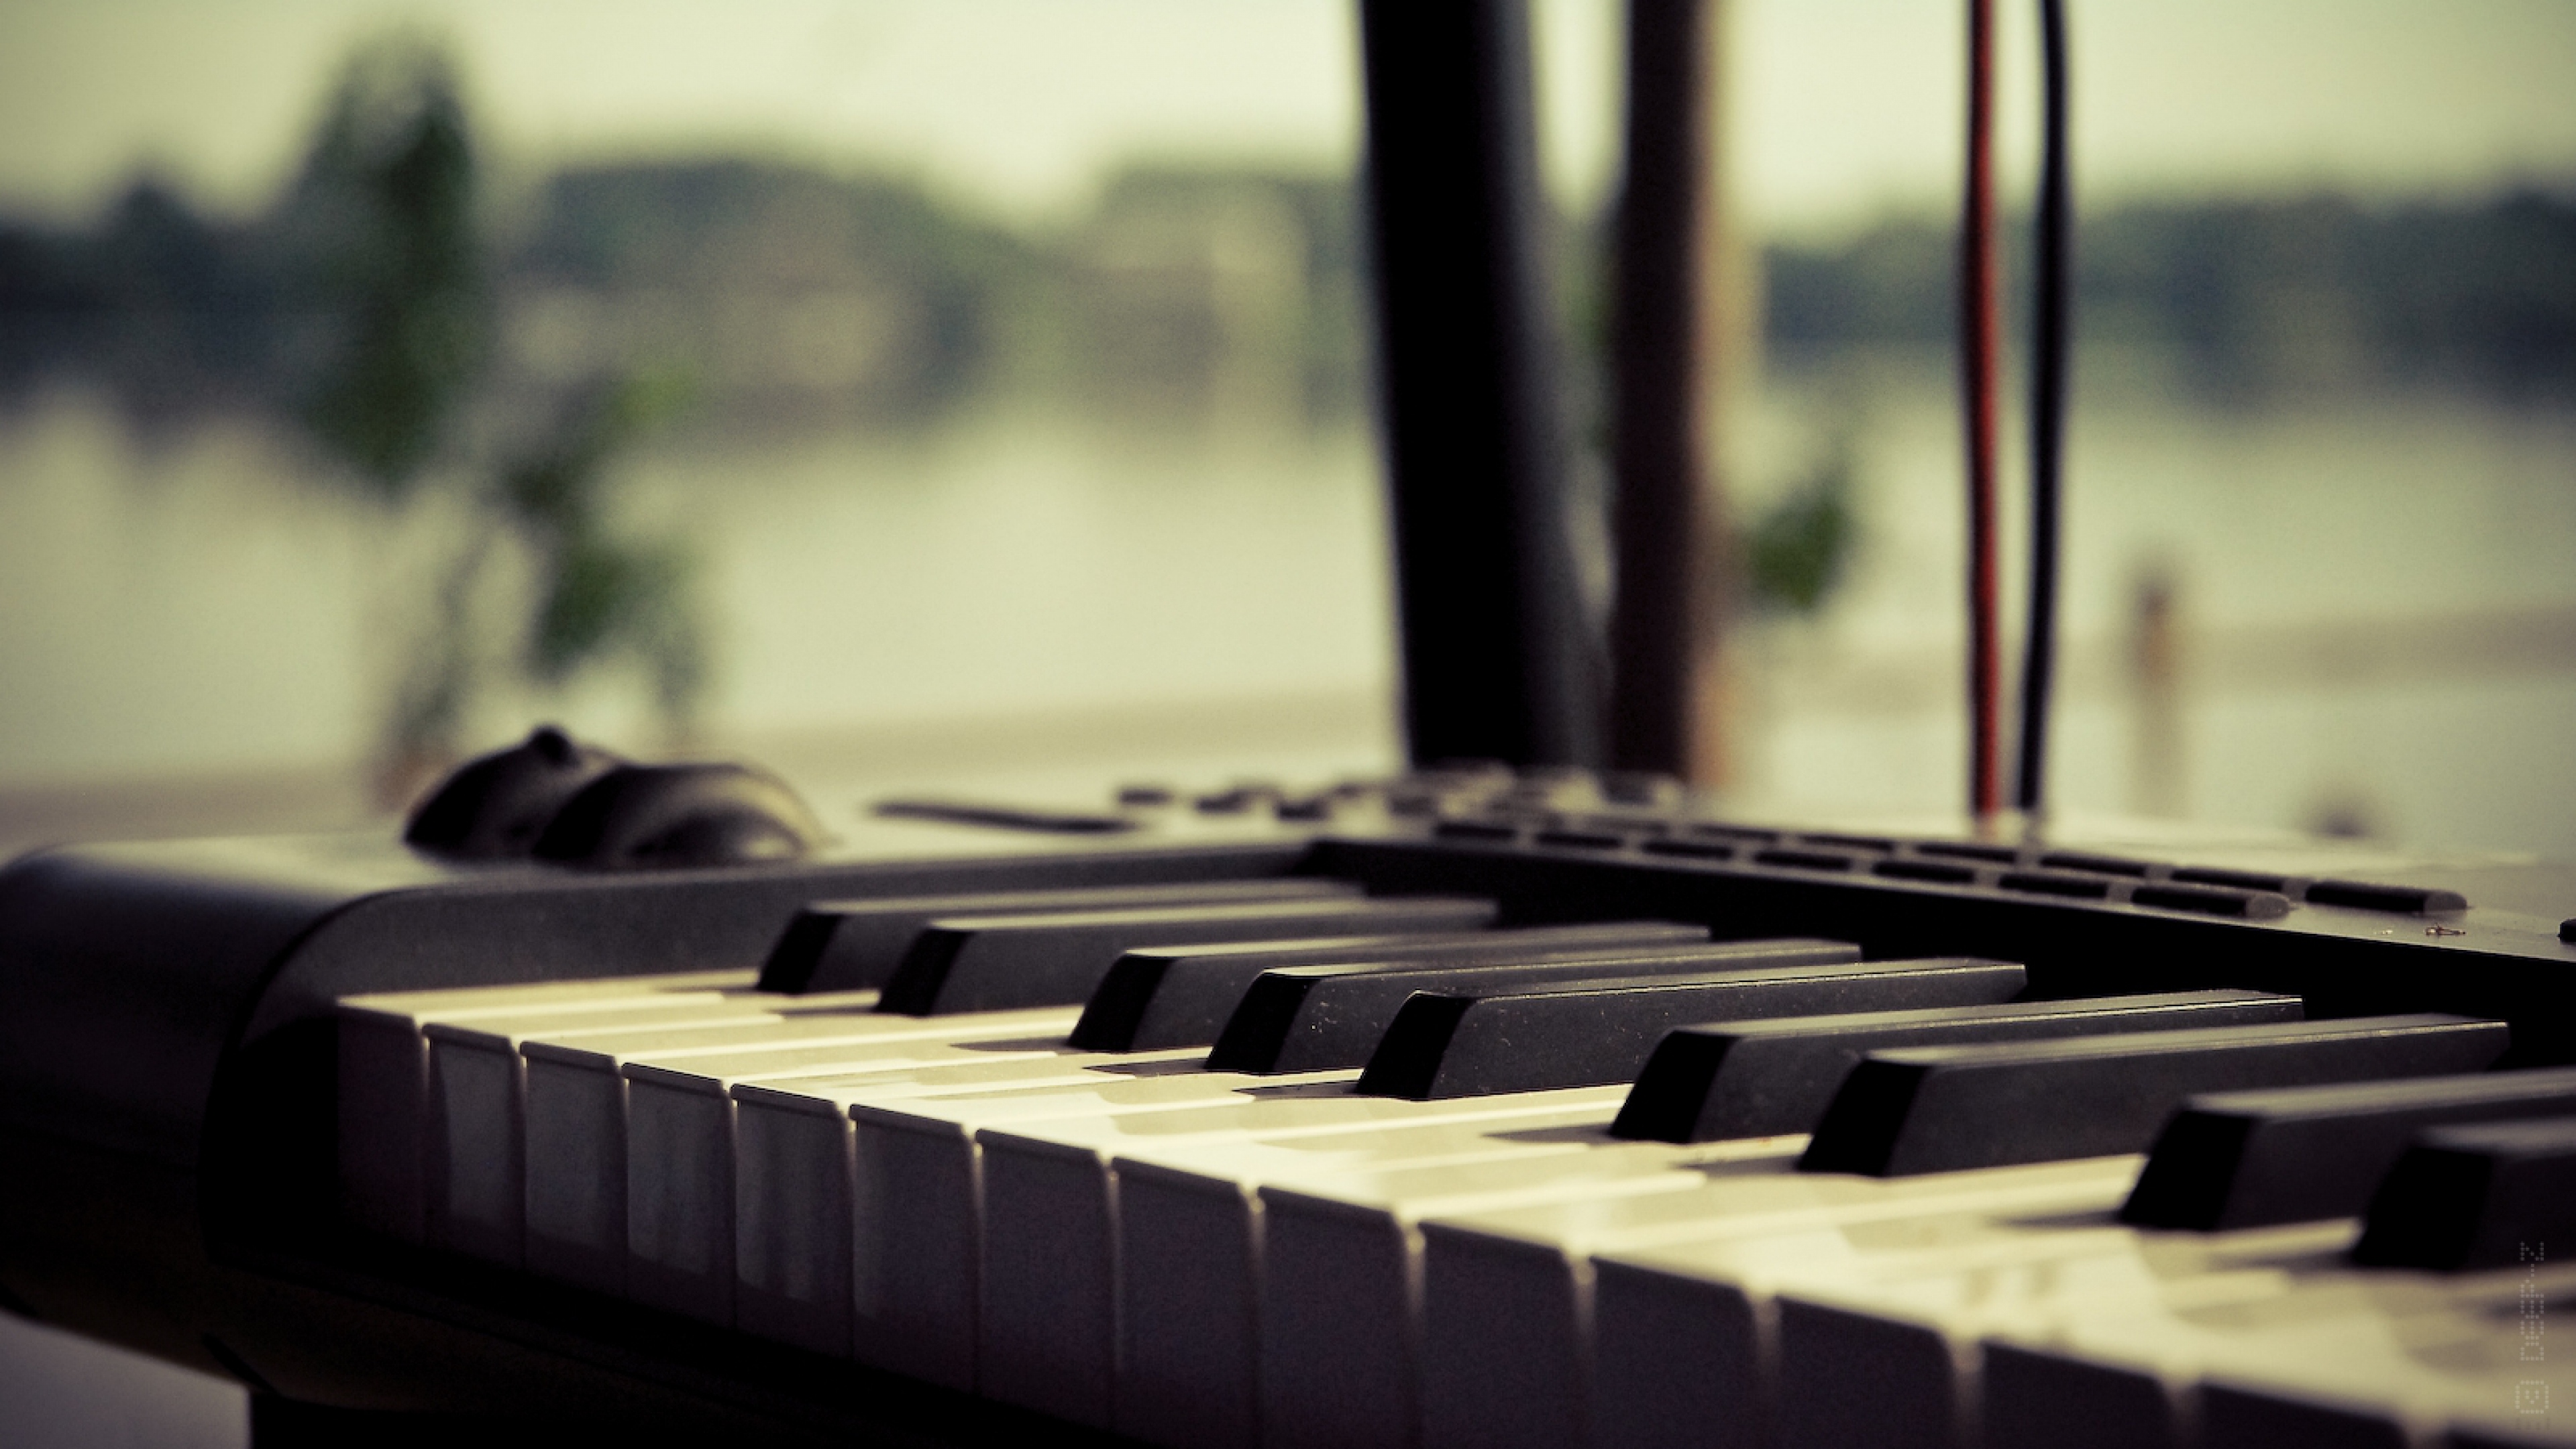 Free desktop hd piano backgrounds - Cool piano backgrounds ...